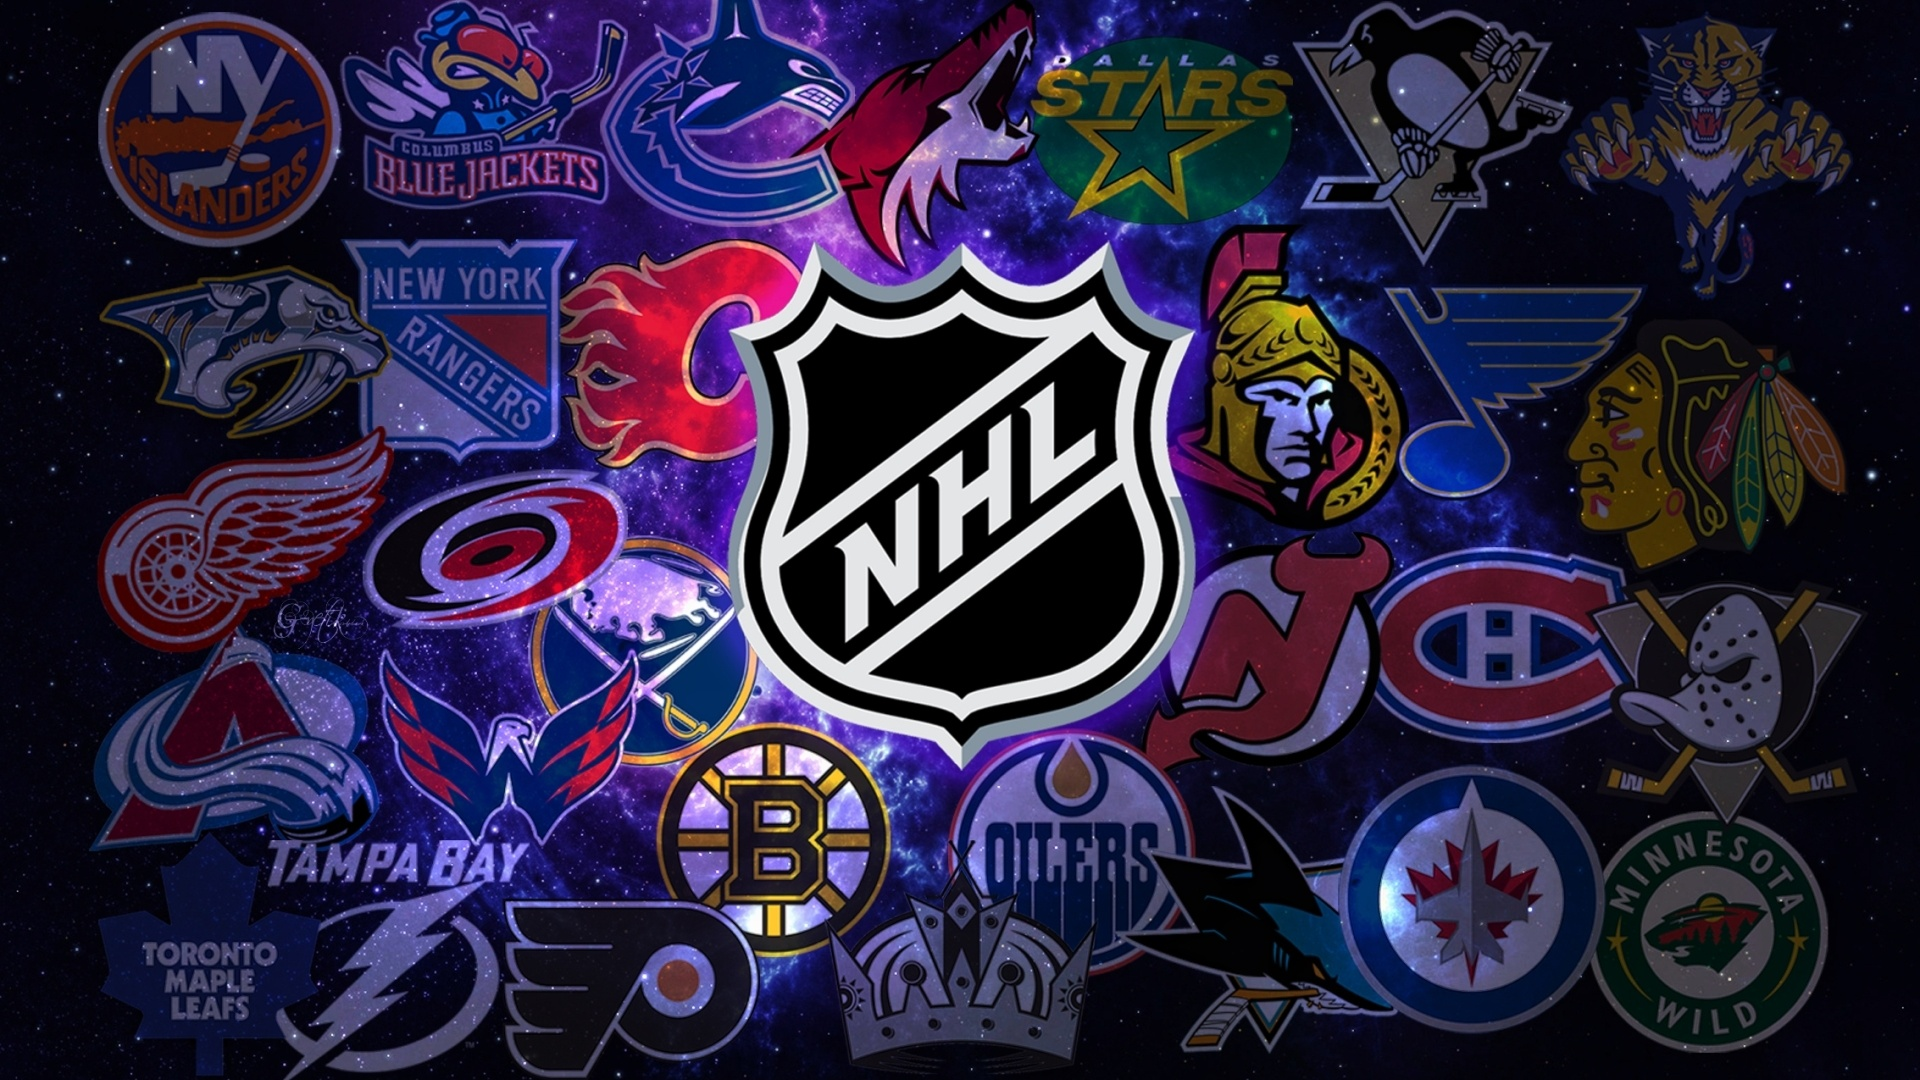 Nhl Hockey Logos 2013 images 1920x1080